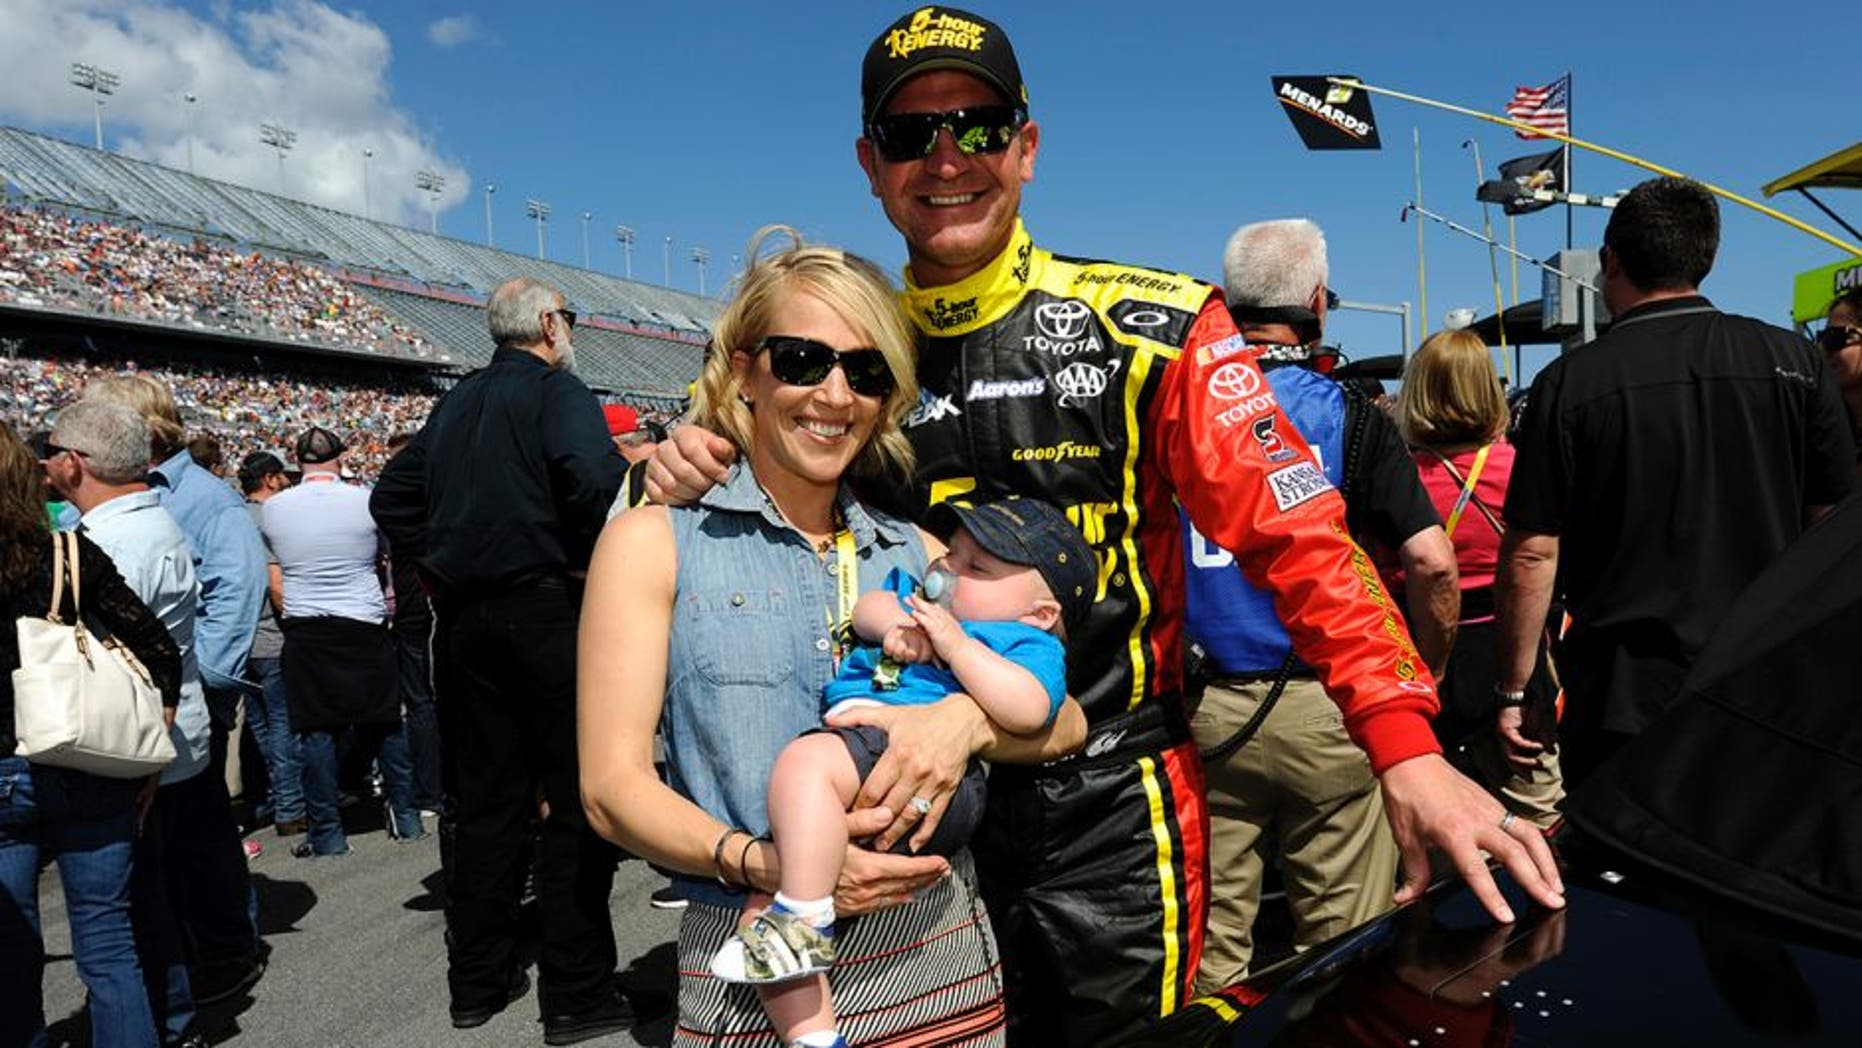 DAYTONA BEACH, FL - FEBRUARY 22: Clint Bowyer, driver of the #15 5-hour ENERGY Toyota, wife Lorra and son Cash Aaron pose for a picture on the grid prior to the NASCAR Sprint Cup Series 57th Annual Daytona 500 at Daytona International Speedway on February 22, 2015 in Daytona Beach, Florida. (Photo by Jared C. Tilton/Getty Images)